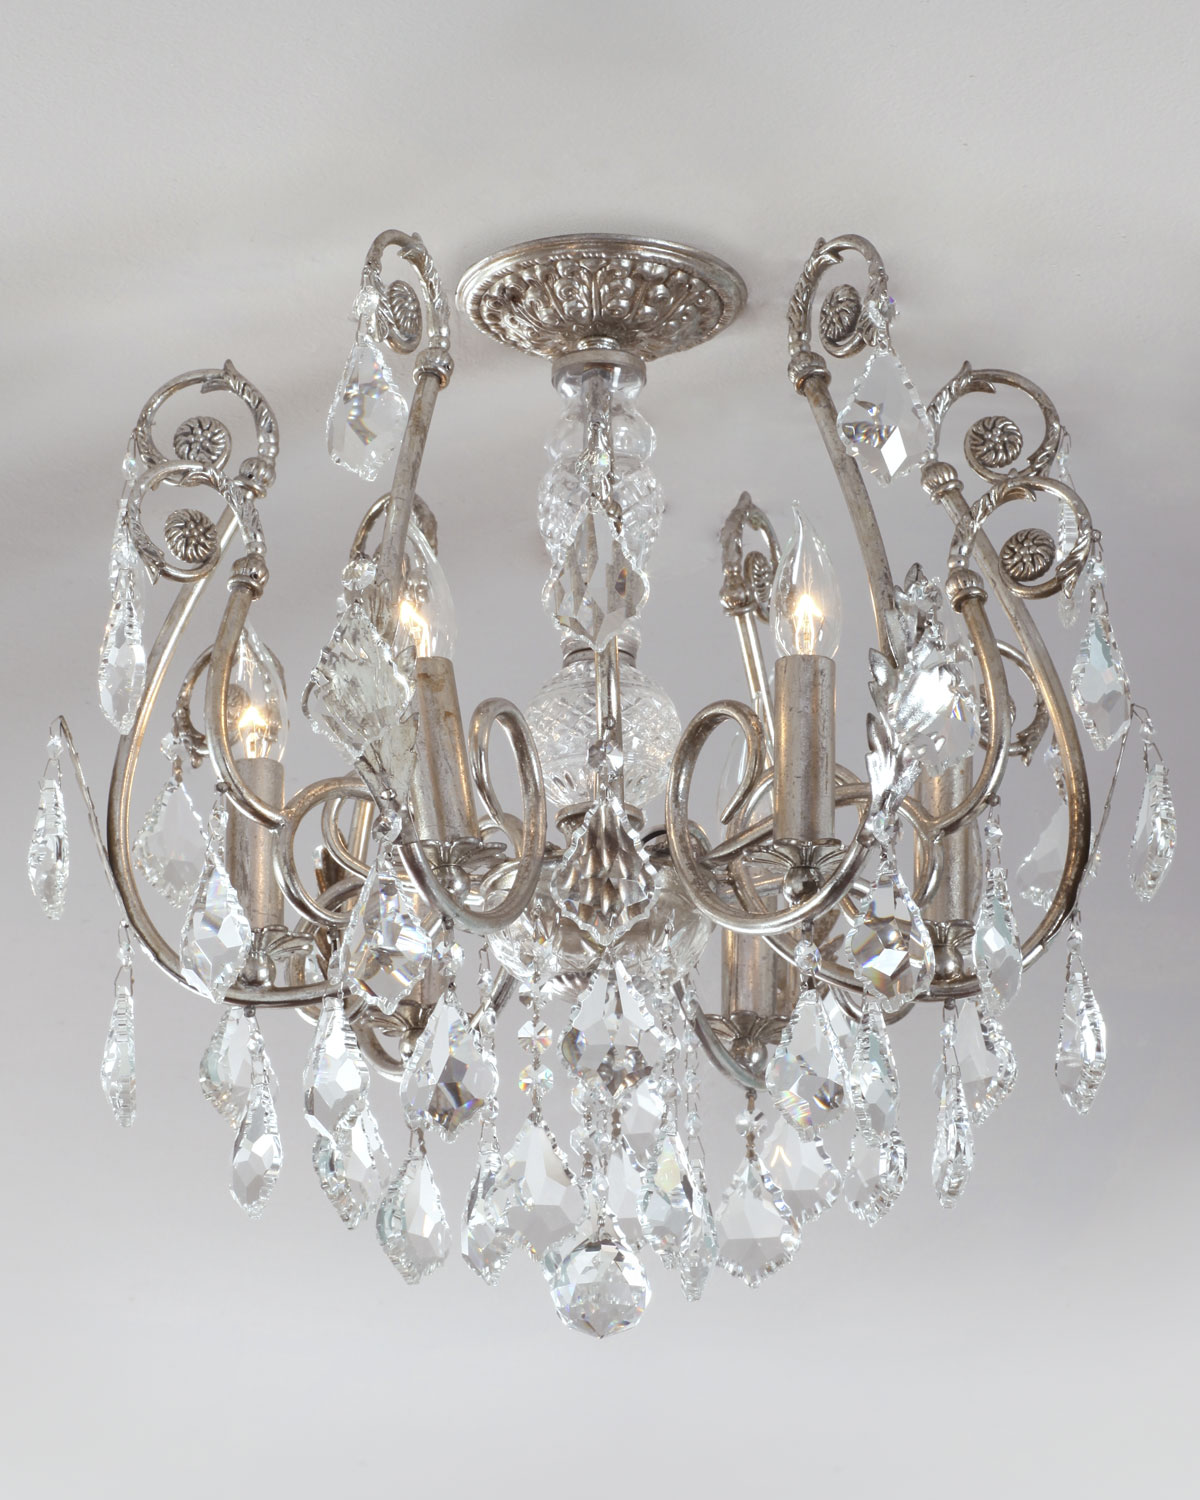 amazon ac flush bubble pxl tranquil and mount ceilings crystal chandelier com dp ceiling